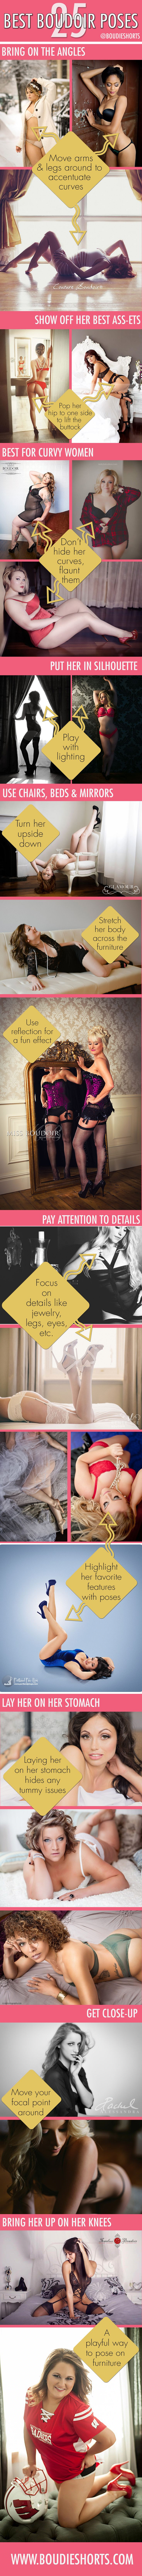 Top Boudoir Poses - Secrets to Getting These Results in Your Studio | Boudie Shorts - Photography education for boudoir photographers